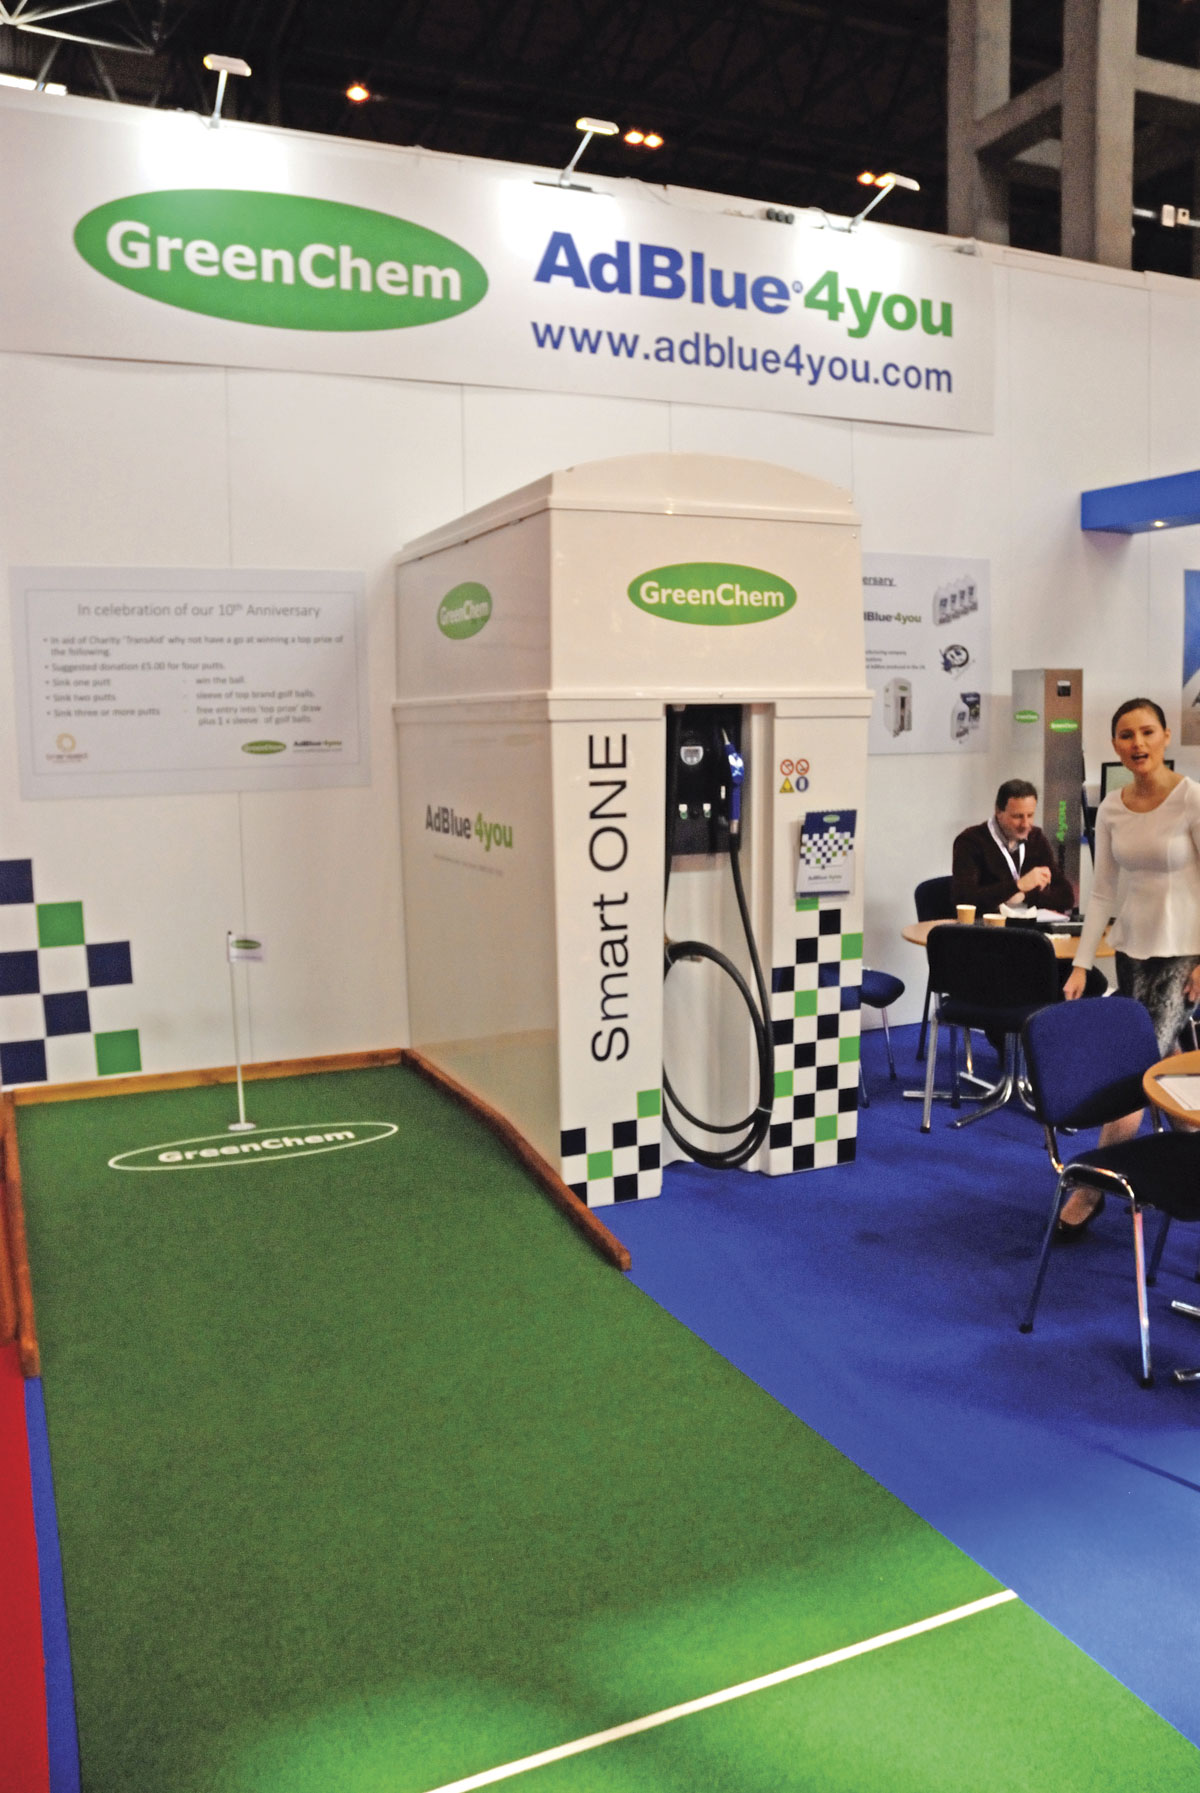 GreenChem's Smart ONE AdBlue storage, dispensing and management unit